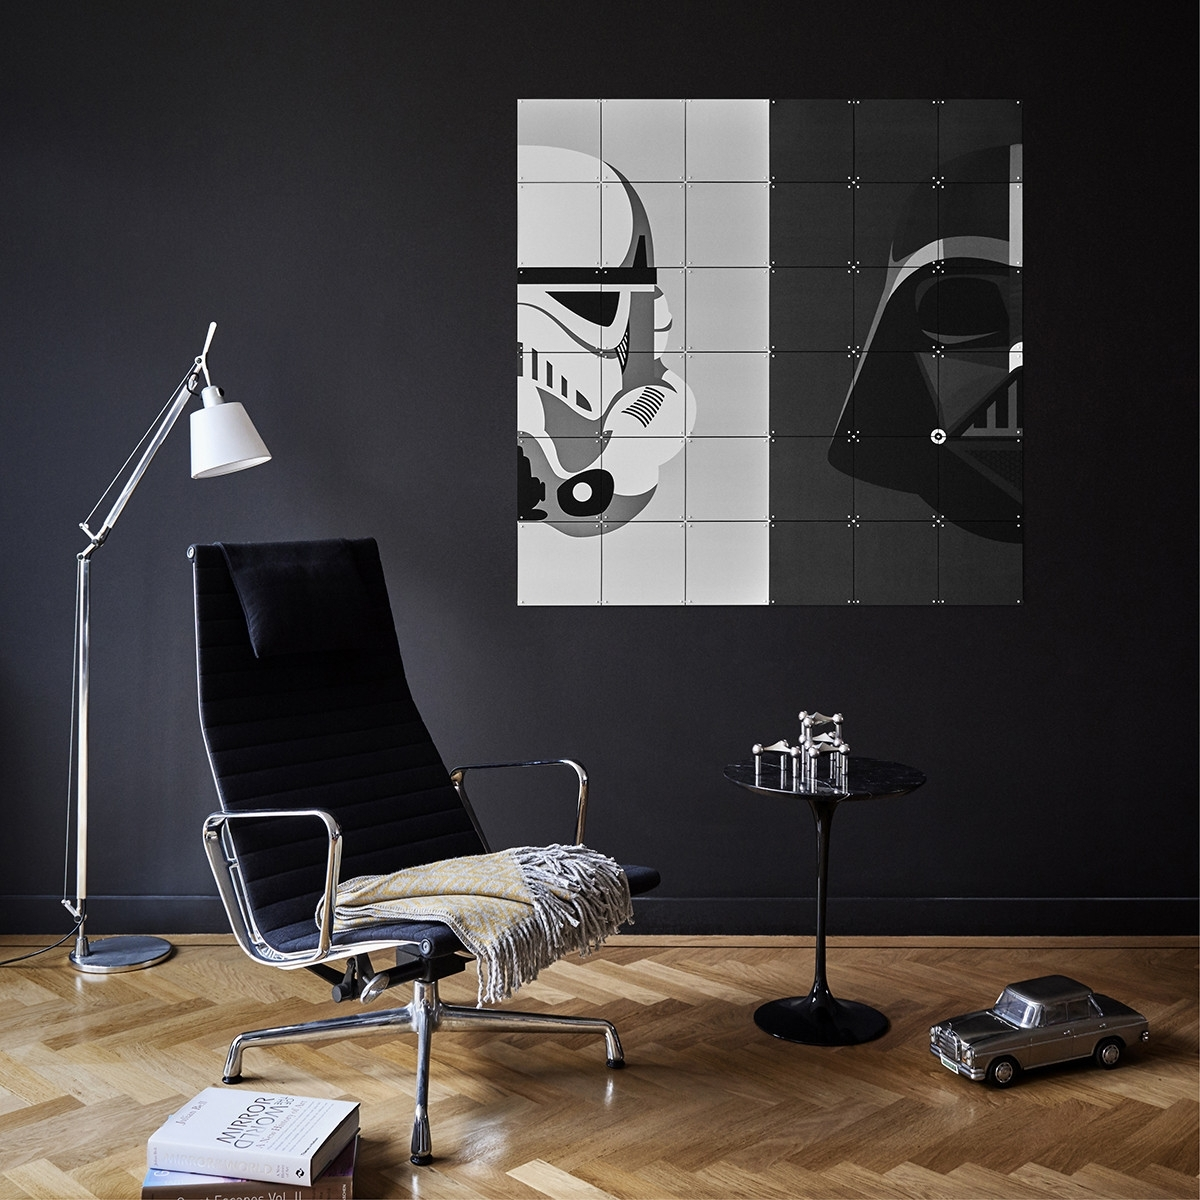 Star Wars Stormtrooper/darth Vader Wall Art Panels – The Basiq With Most Popular Darth Vader Wall Art (View 18 of 20)